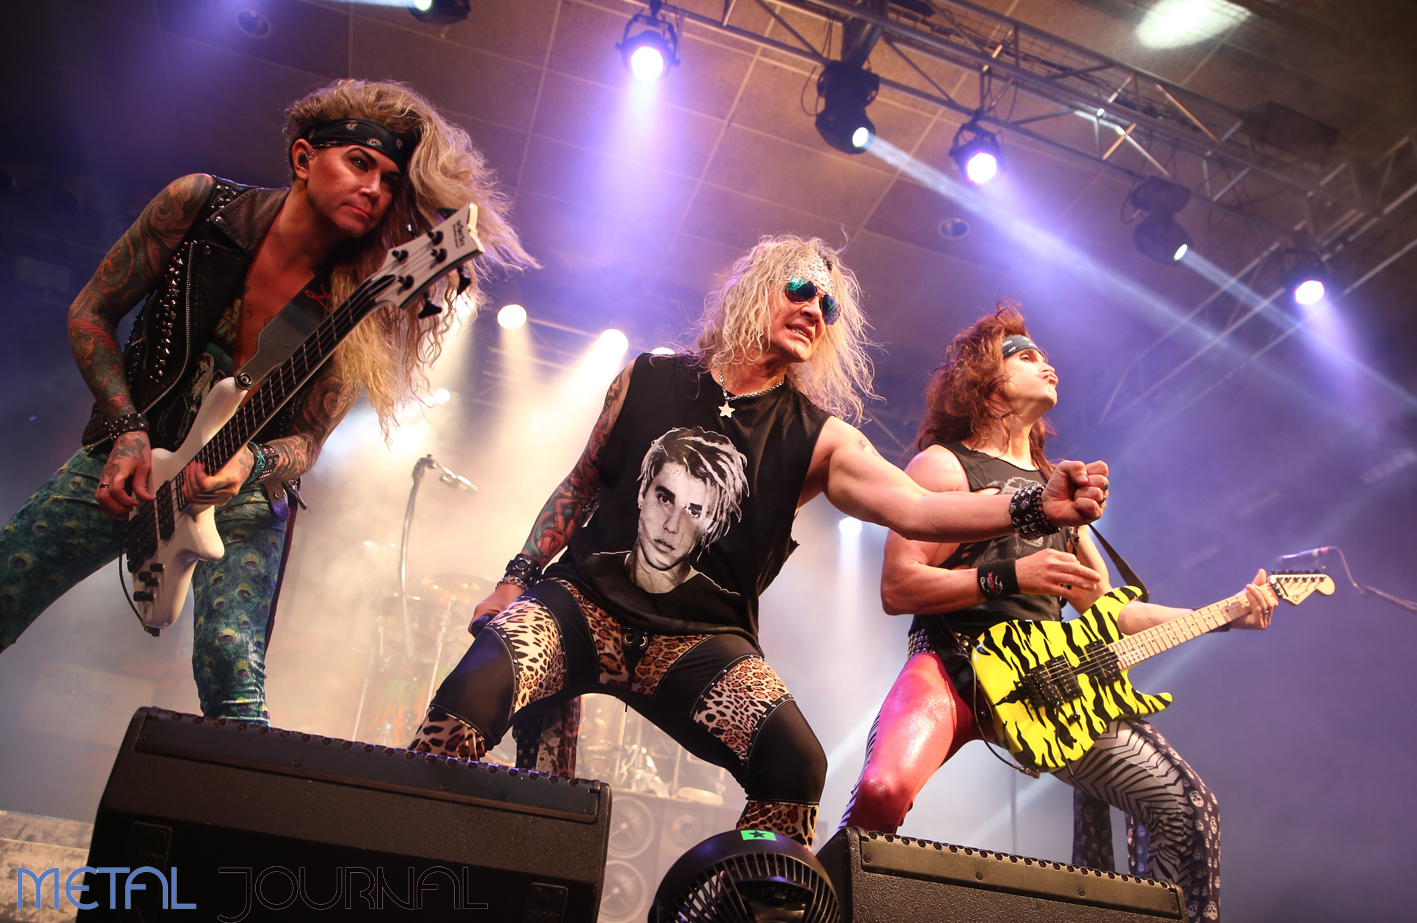 steel panther bilbao18 metal journal pic 4